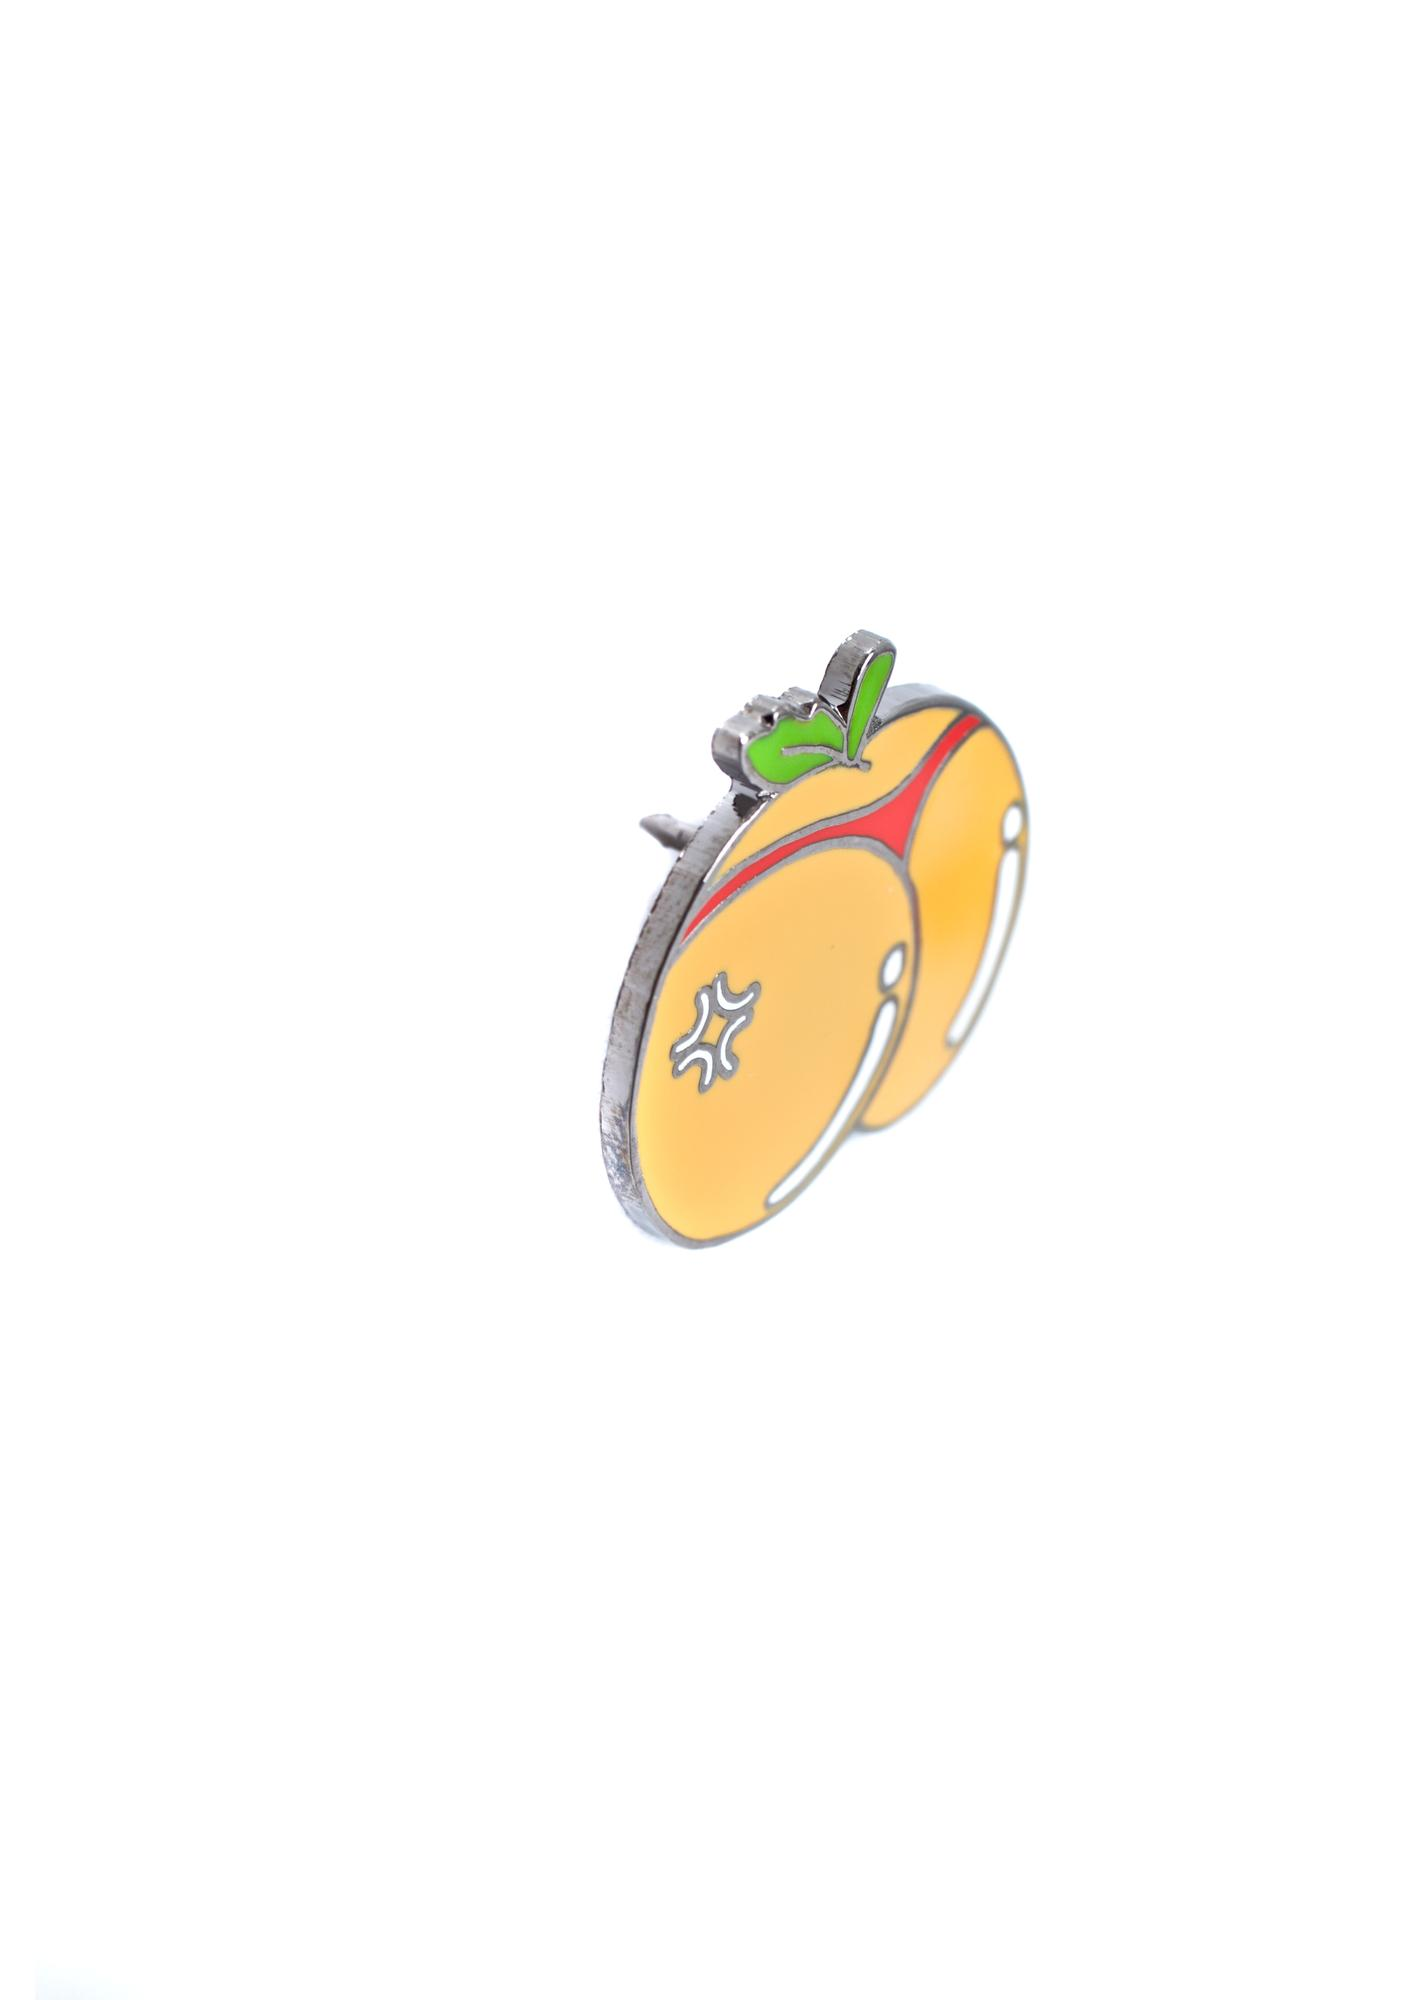 Juicy Booty Enamel Pin